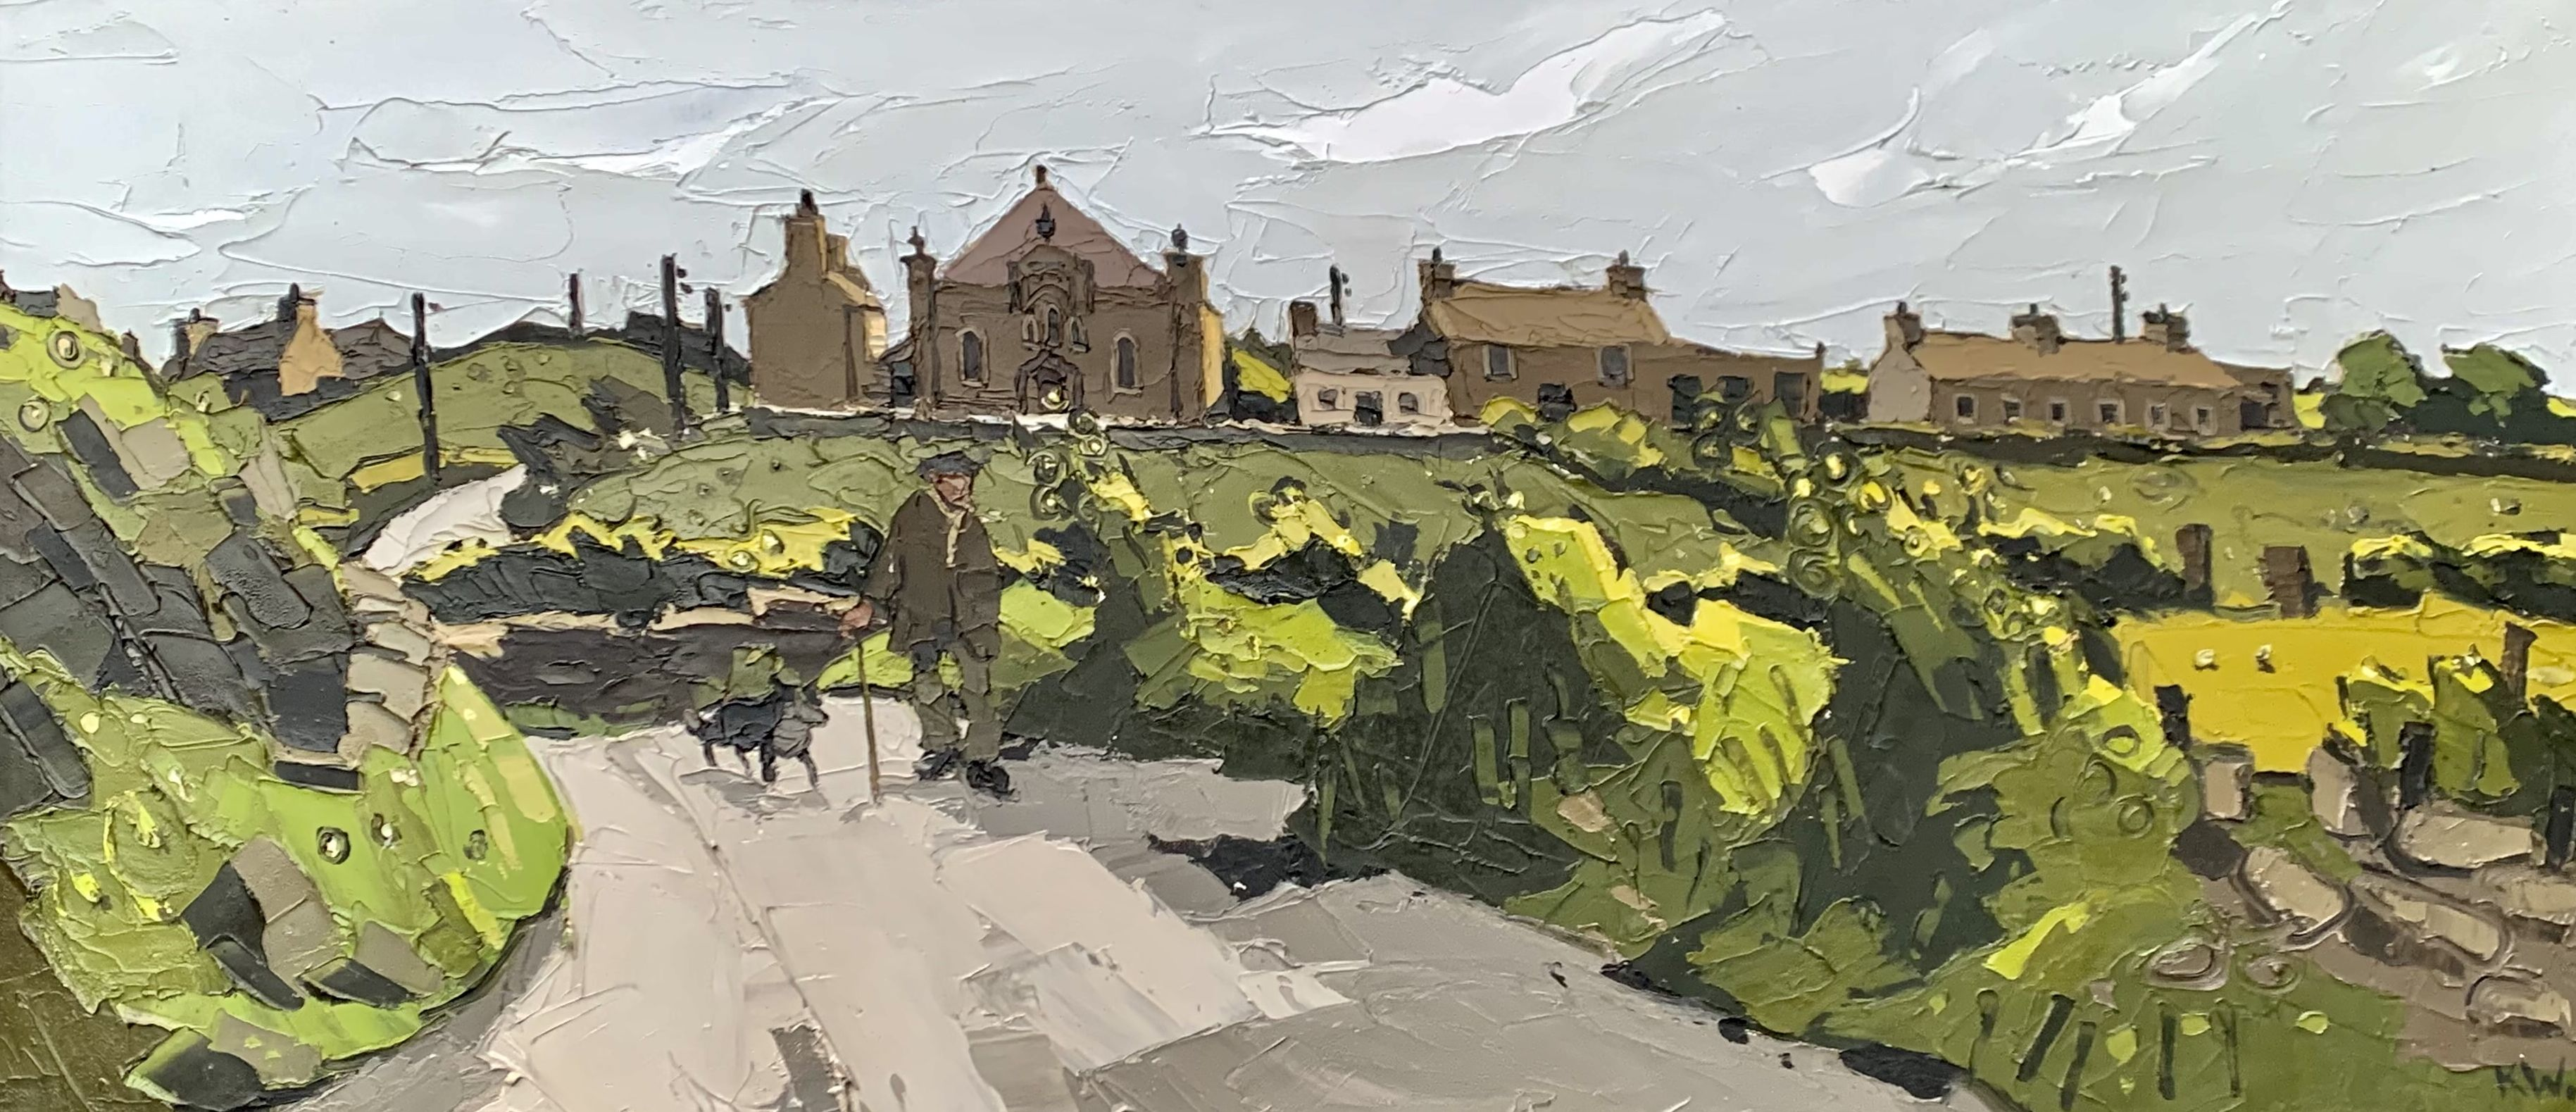 SIR KYFFIN WILLIAMS RA oil on canvas - Ynys Mon (Anglesey) landscape with farmer and dog walking